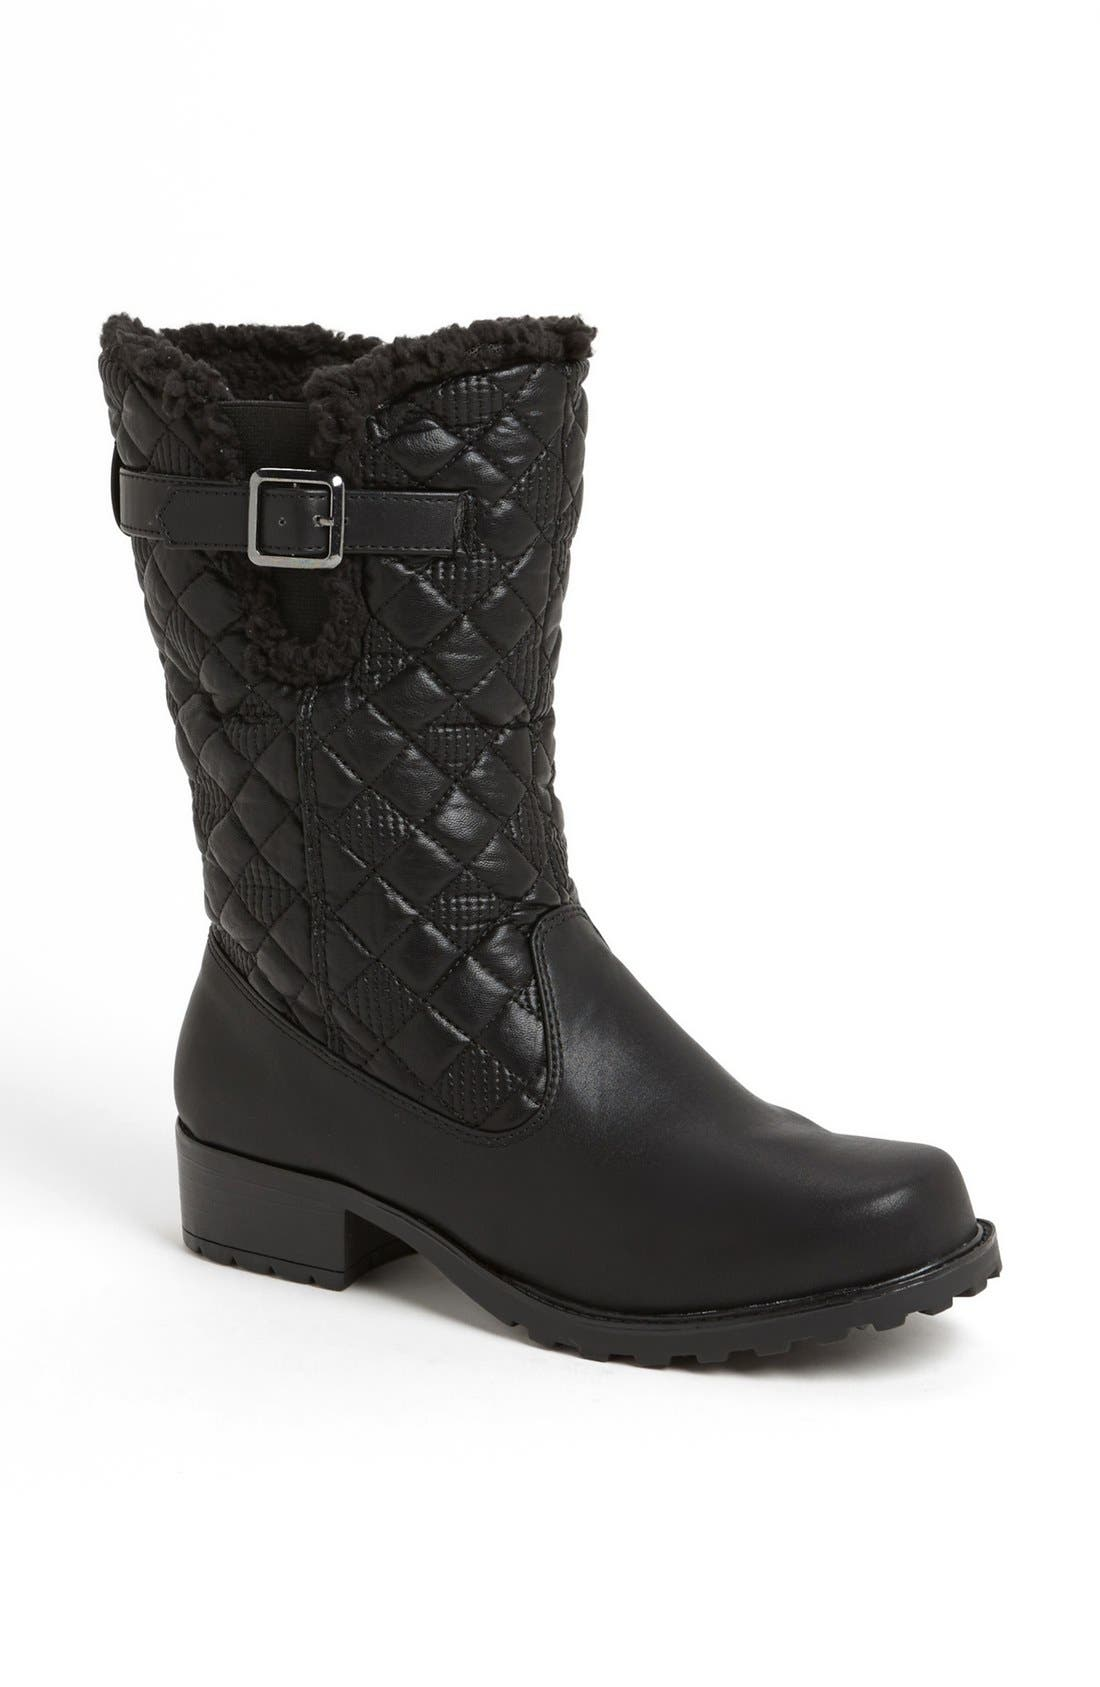 'Blizzard III' Boot,                             Main thumbnail 1, color,                             BLACK FAUX LEATHER